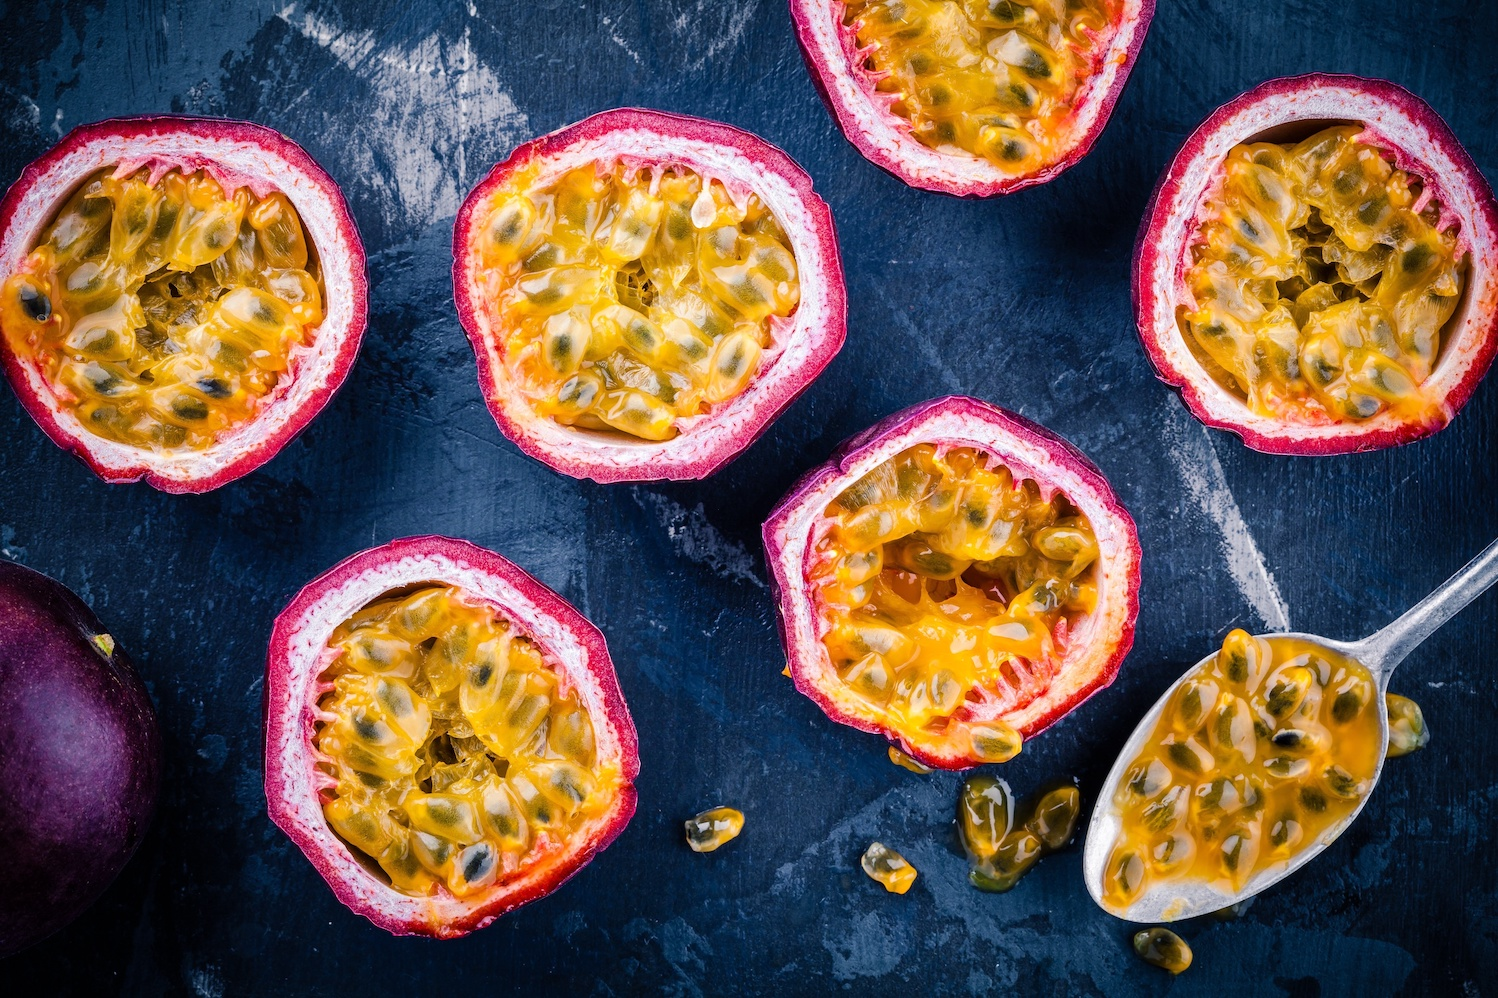 Passion Fruit copy.jpeg